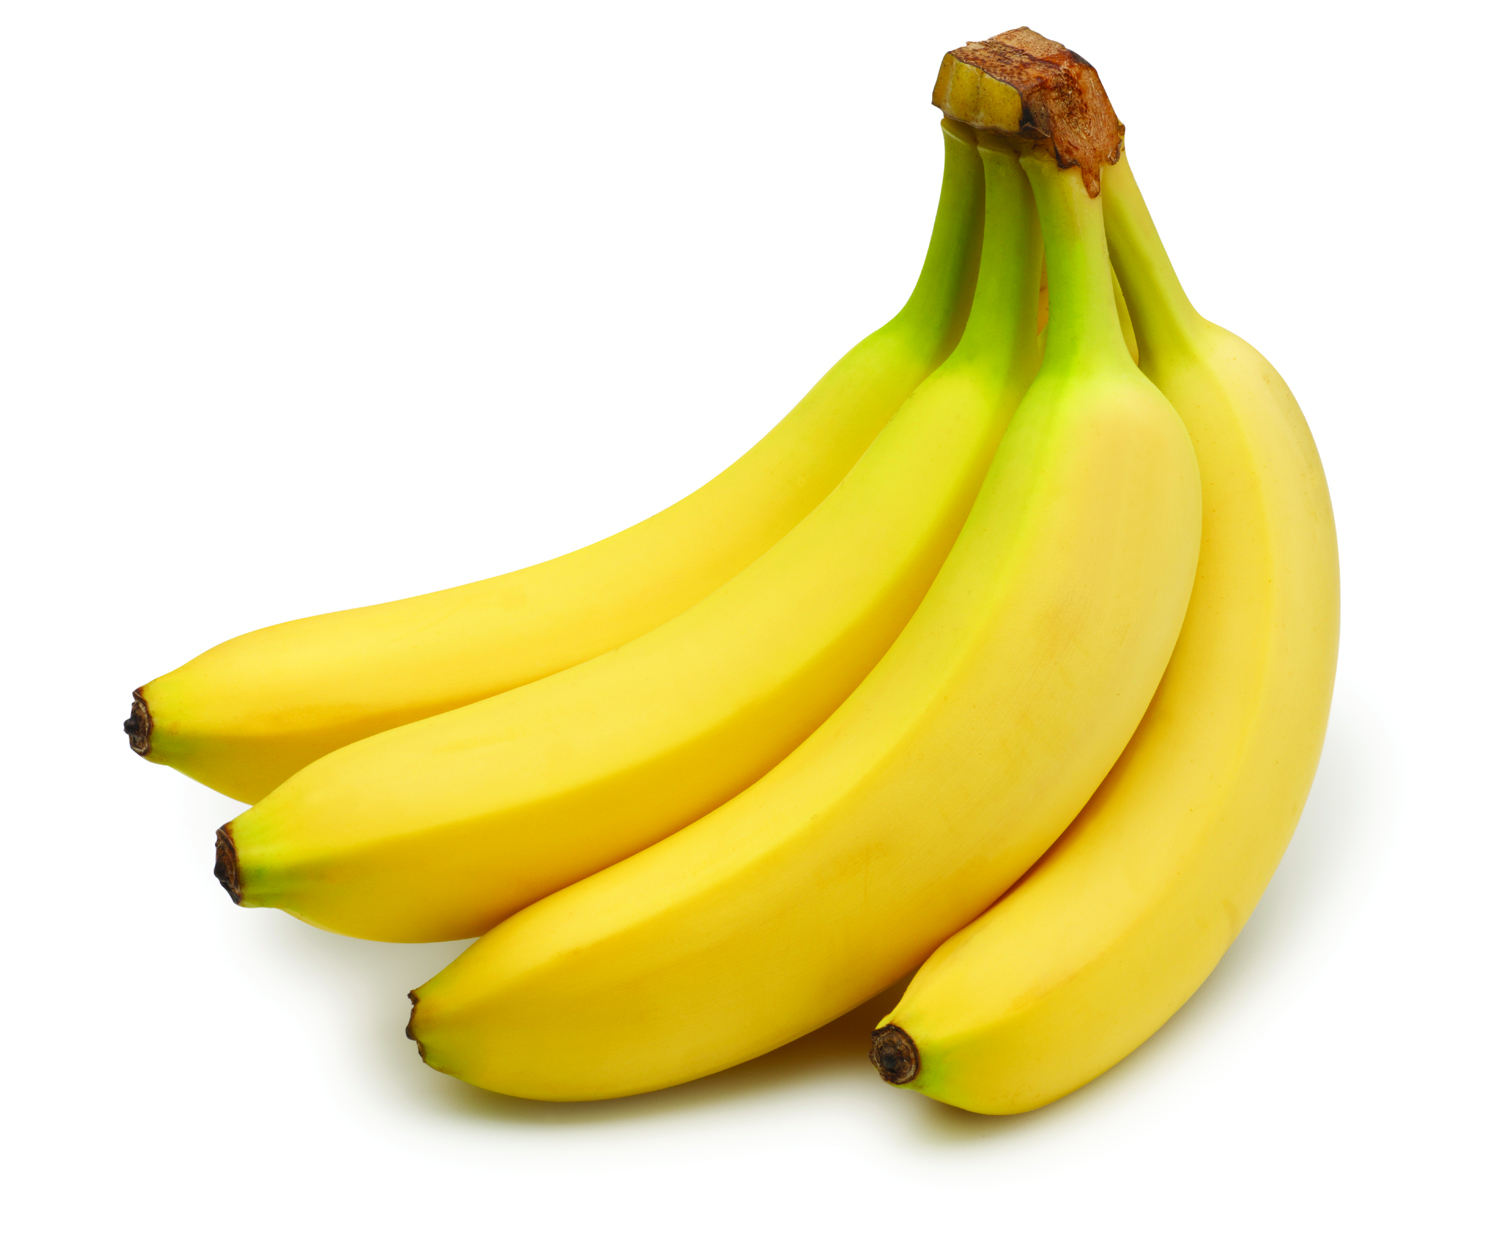 BANANAS arr an easy,economical, and rich source of potassium, which helps lower blood pressure. Eat them by themselves, or freeze and use them in smoothies